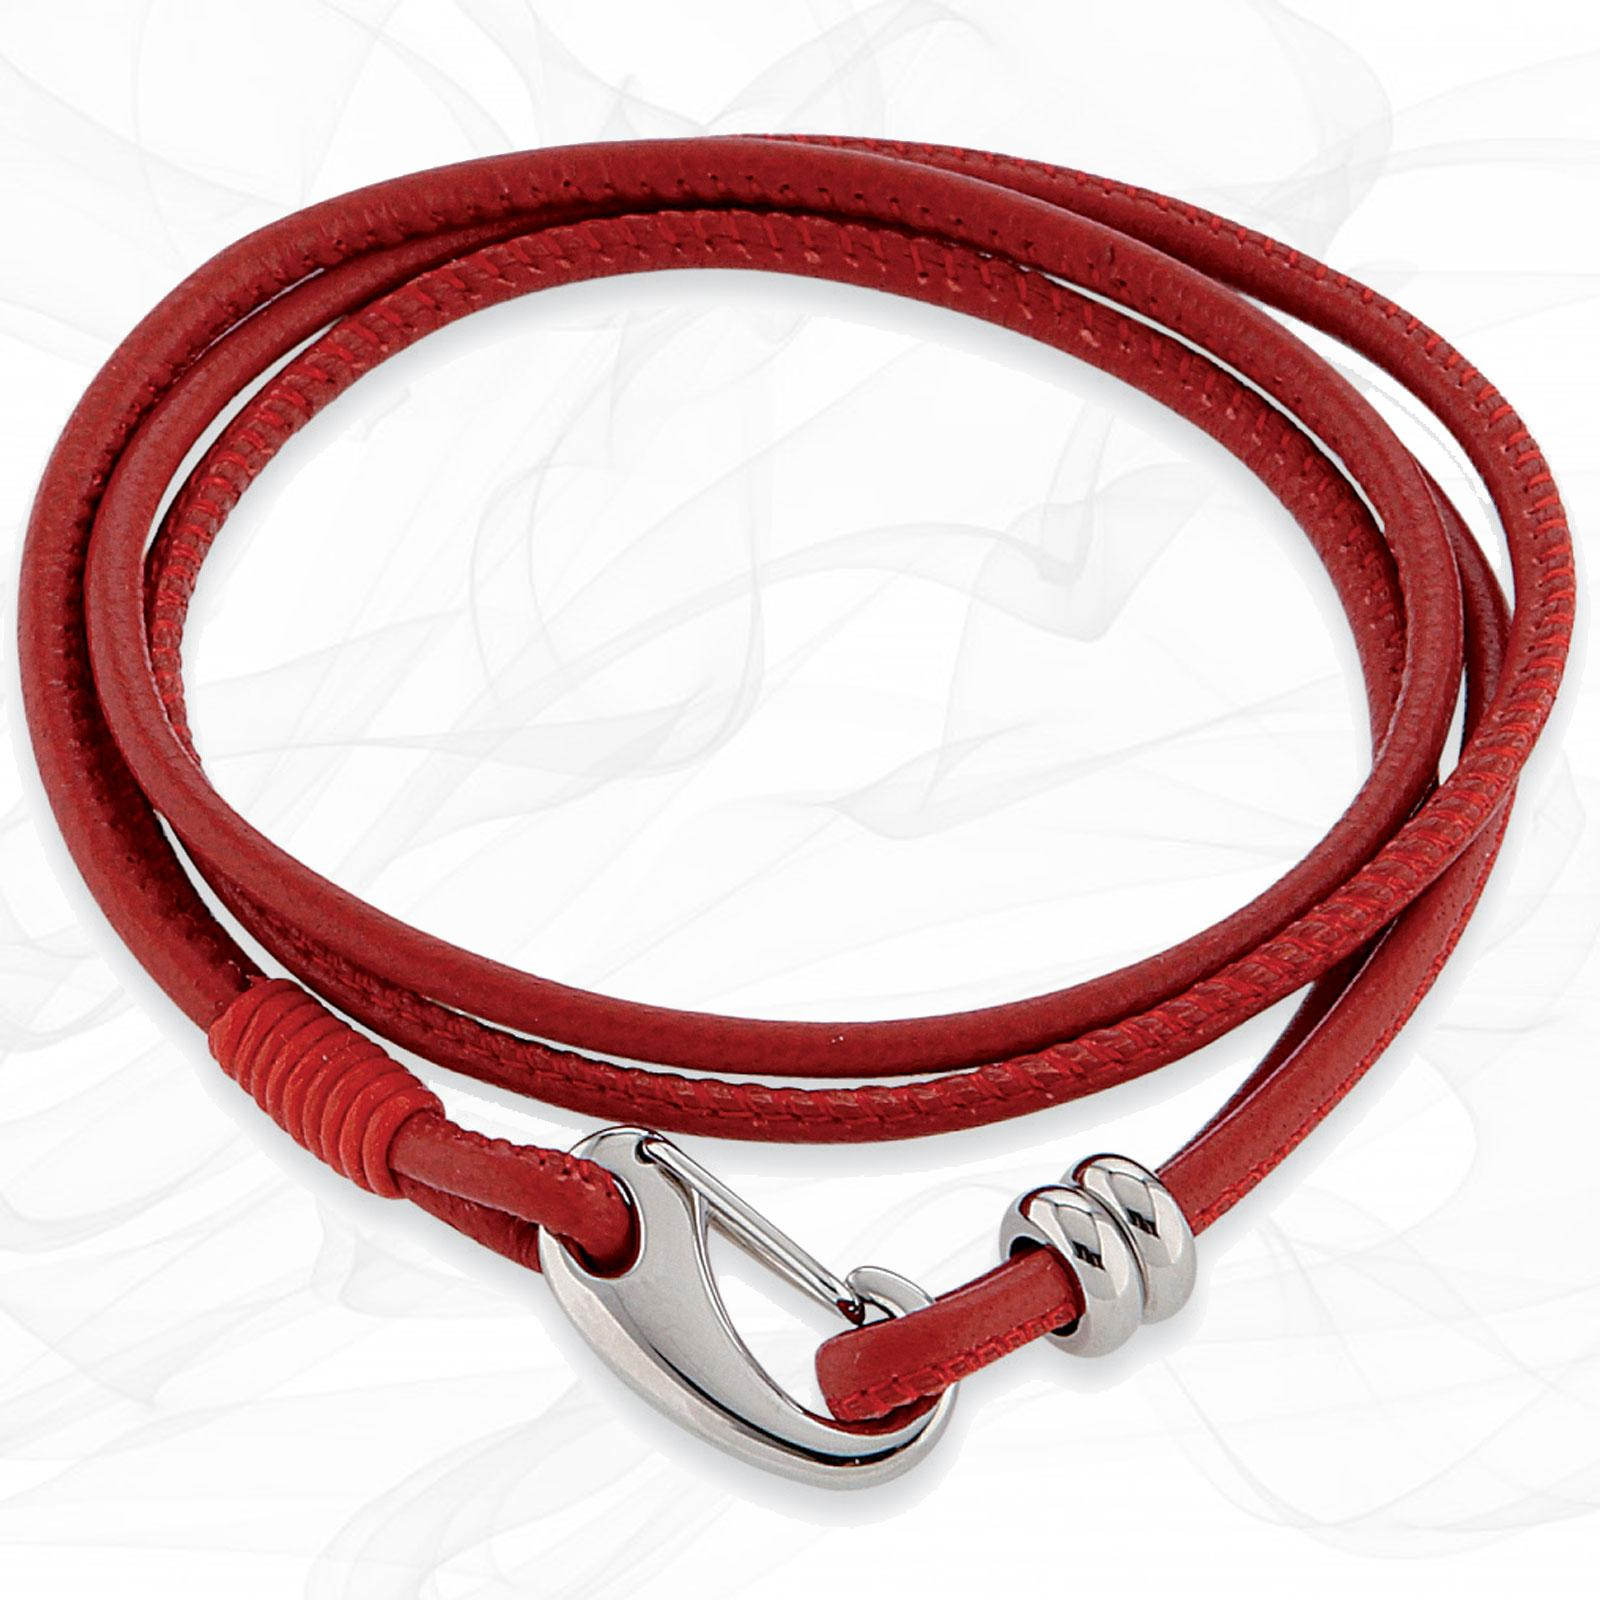 Simple smooth Red 3mm Nappa Double wrap Leather Bracelet for Women